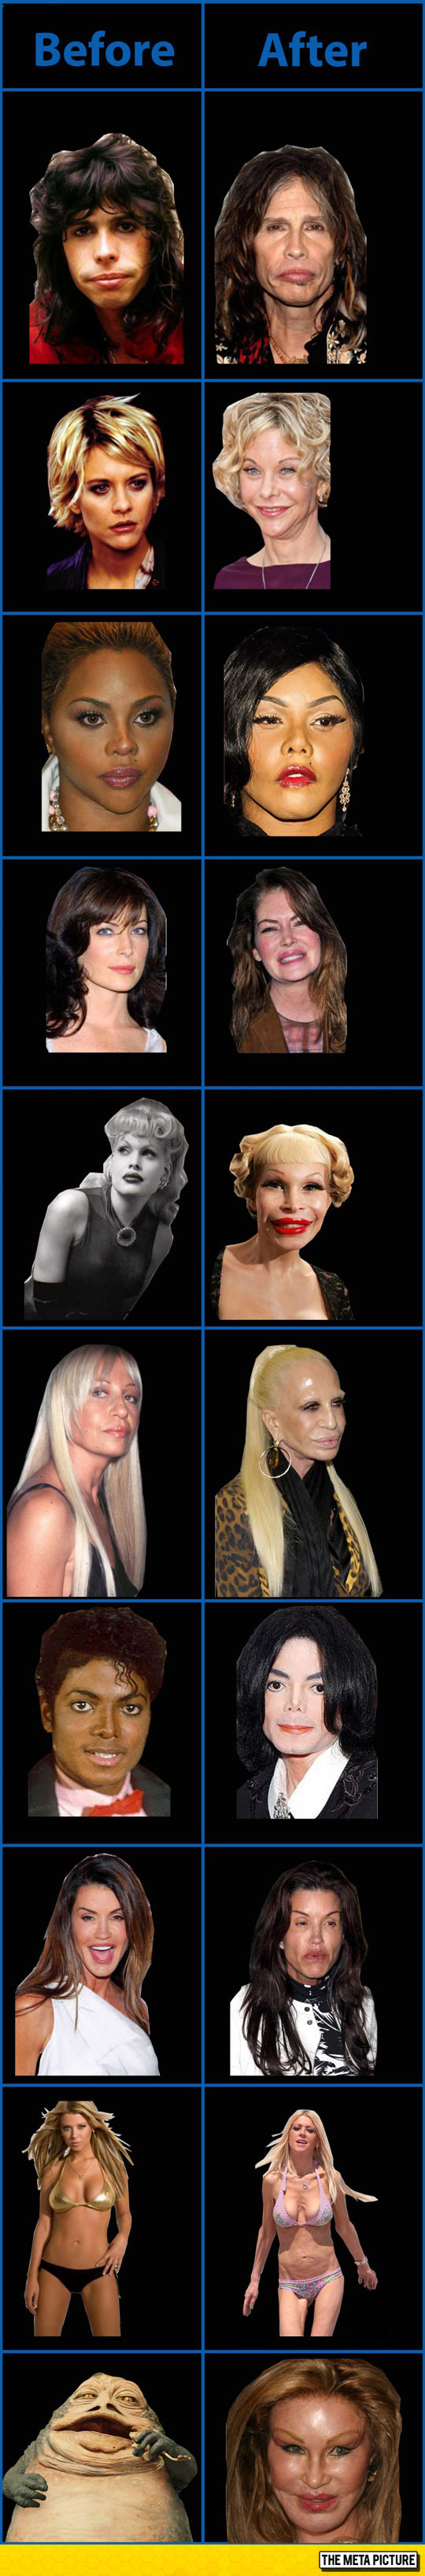 funny-celebrities-plastic-surgery-wrong